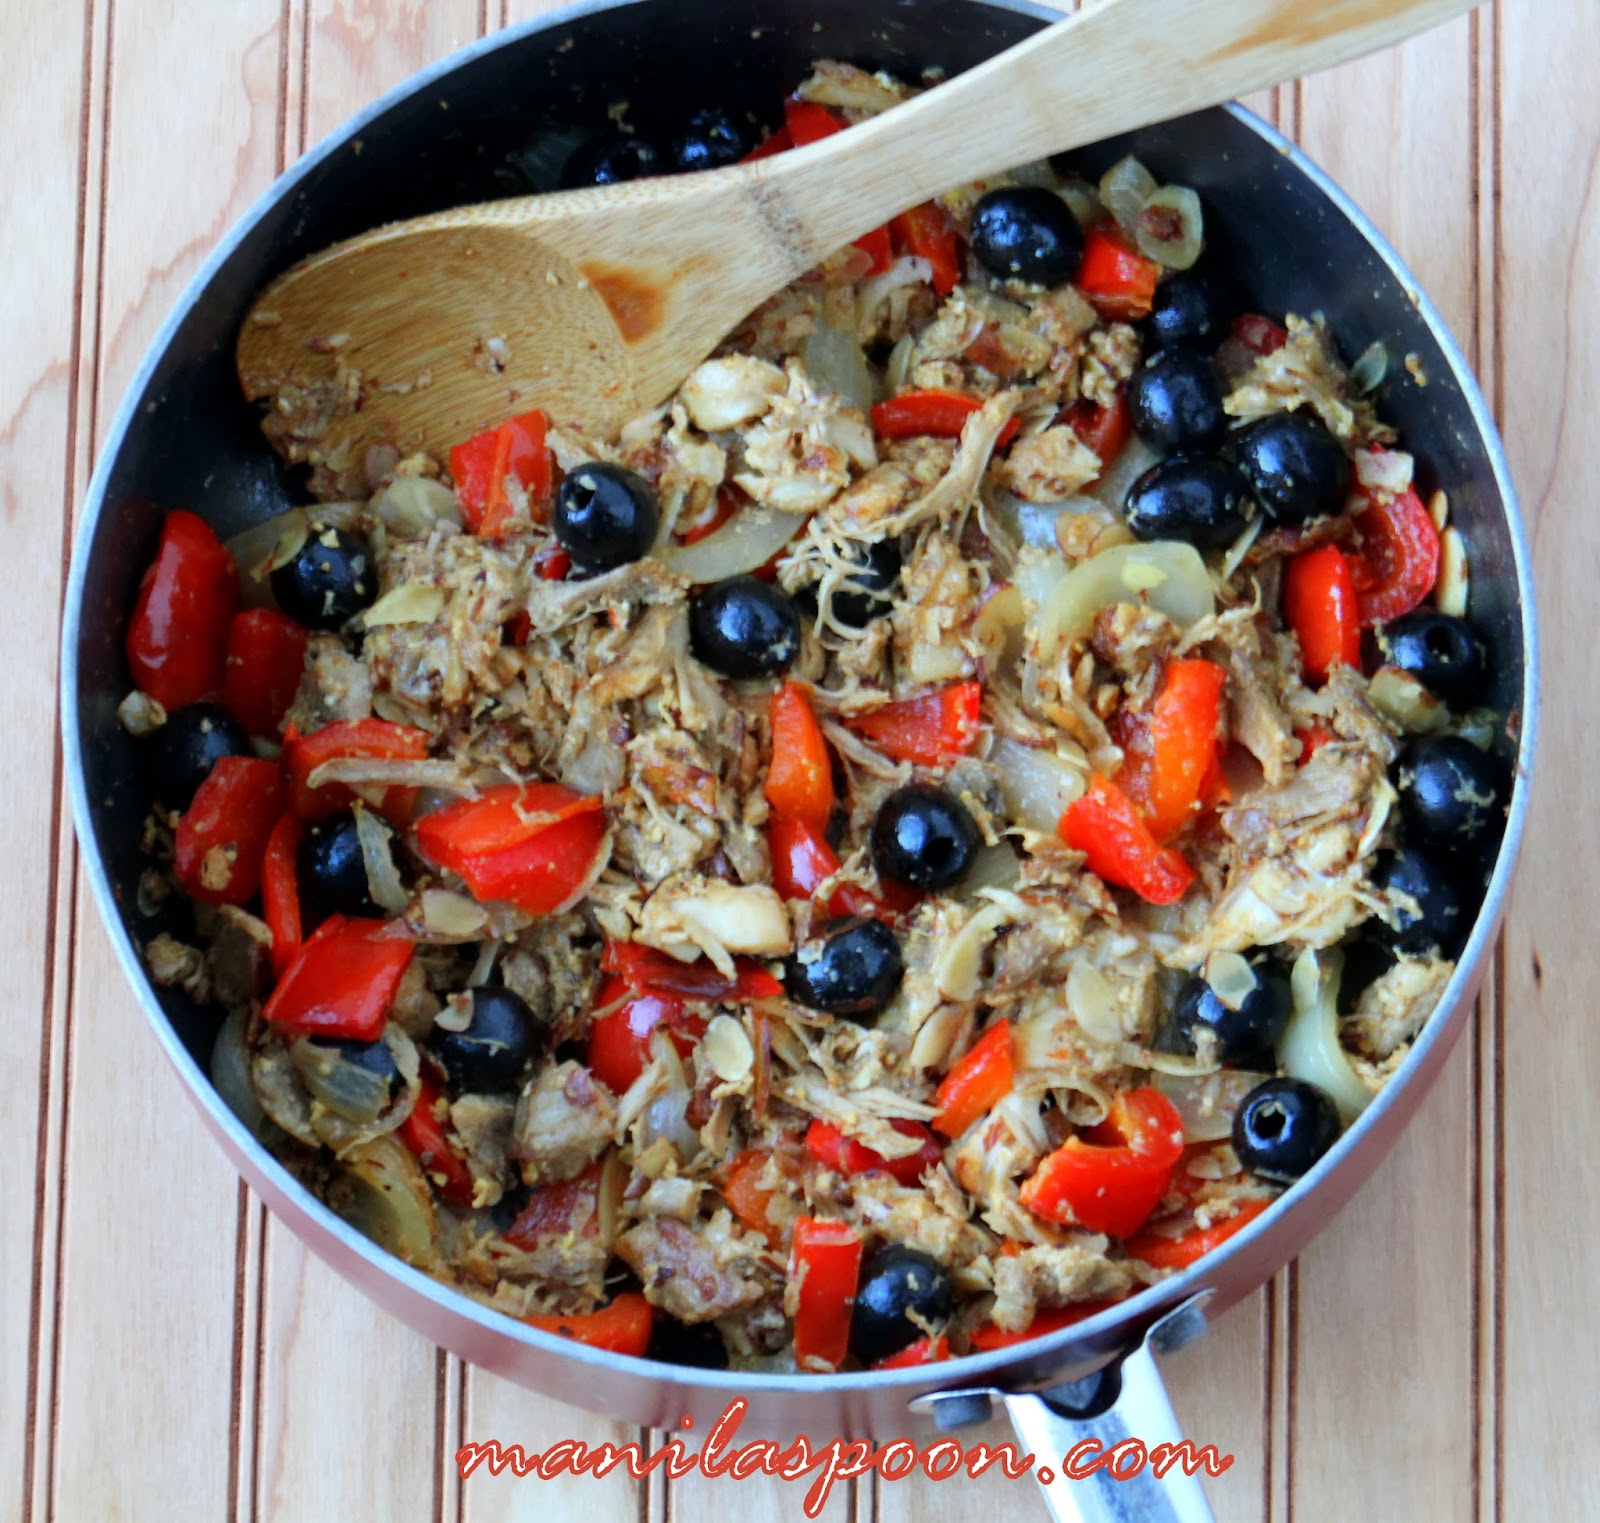 Looking for a new and delicious left-over turkey dish to try? This turkey hash is loaded with flavors from olives, bell peppers, parsley and you can even melt some cheese on top if you like!! Enjoy!